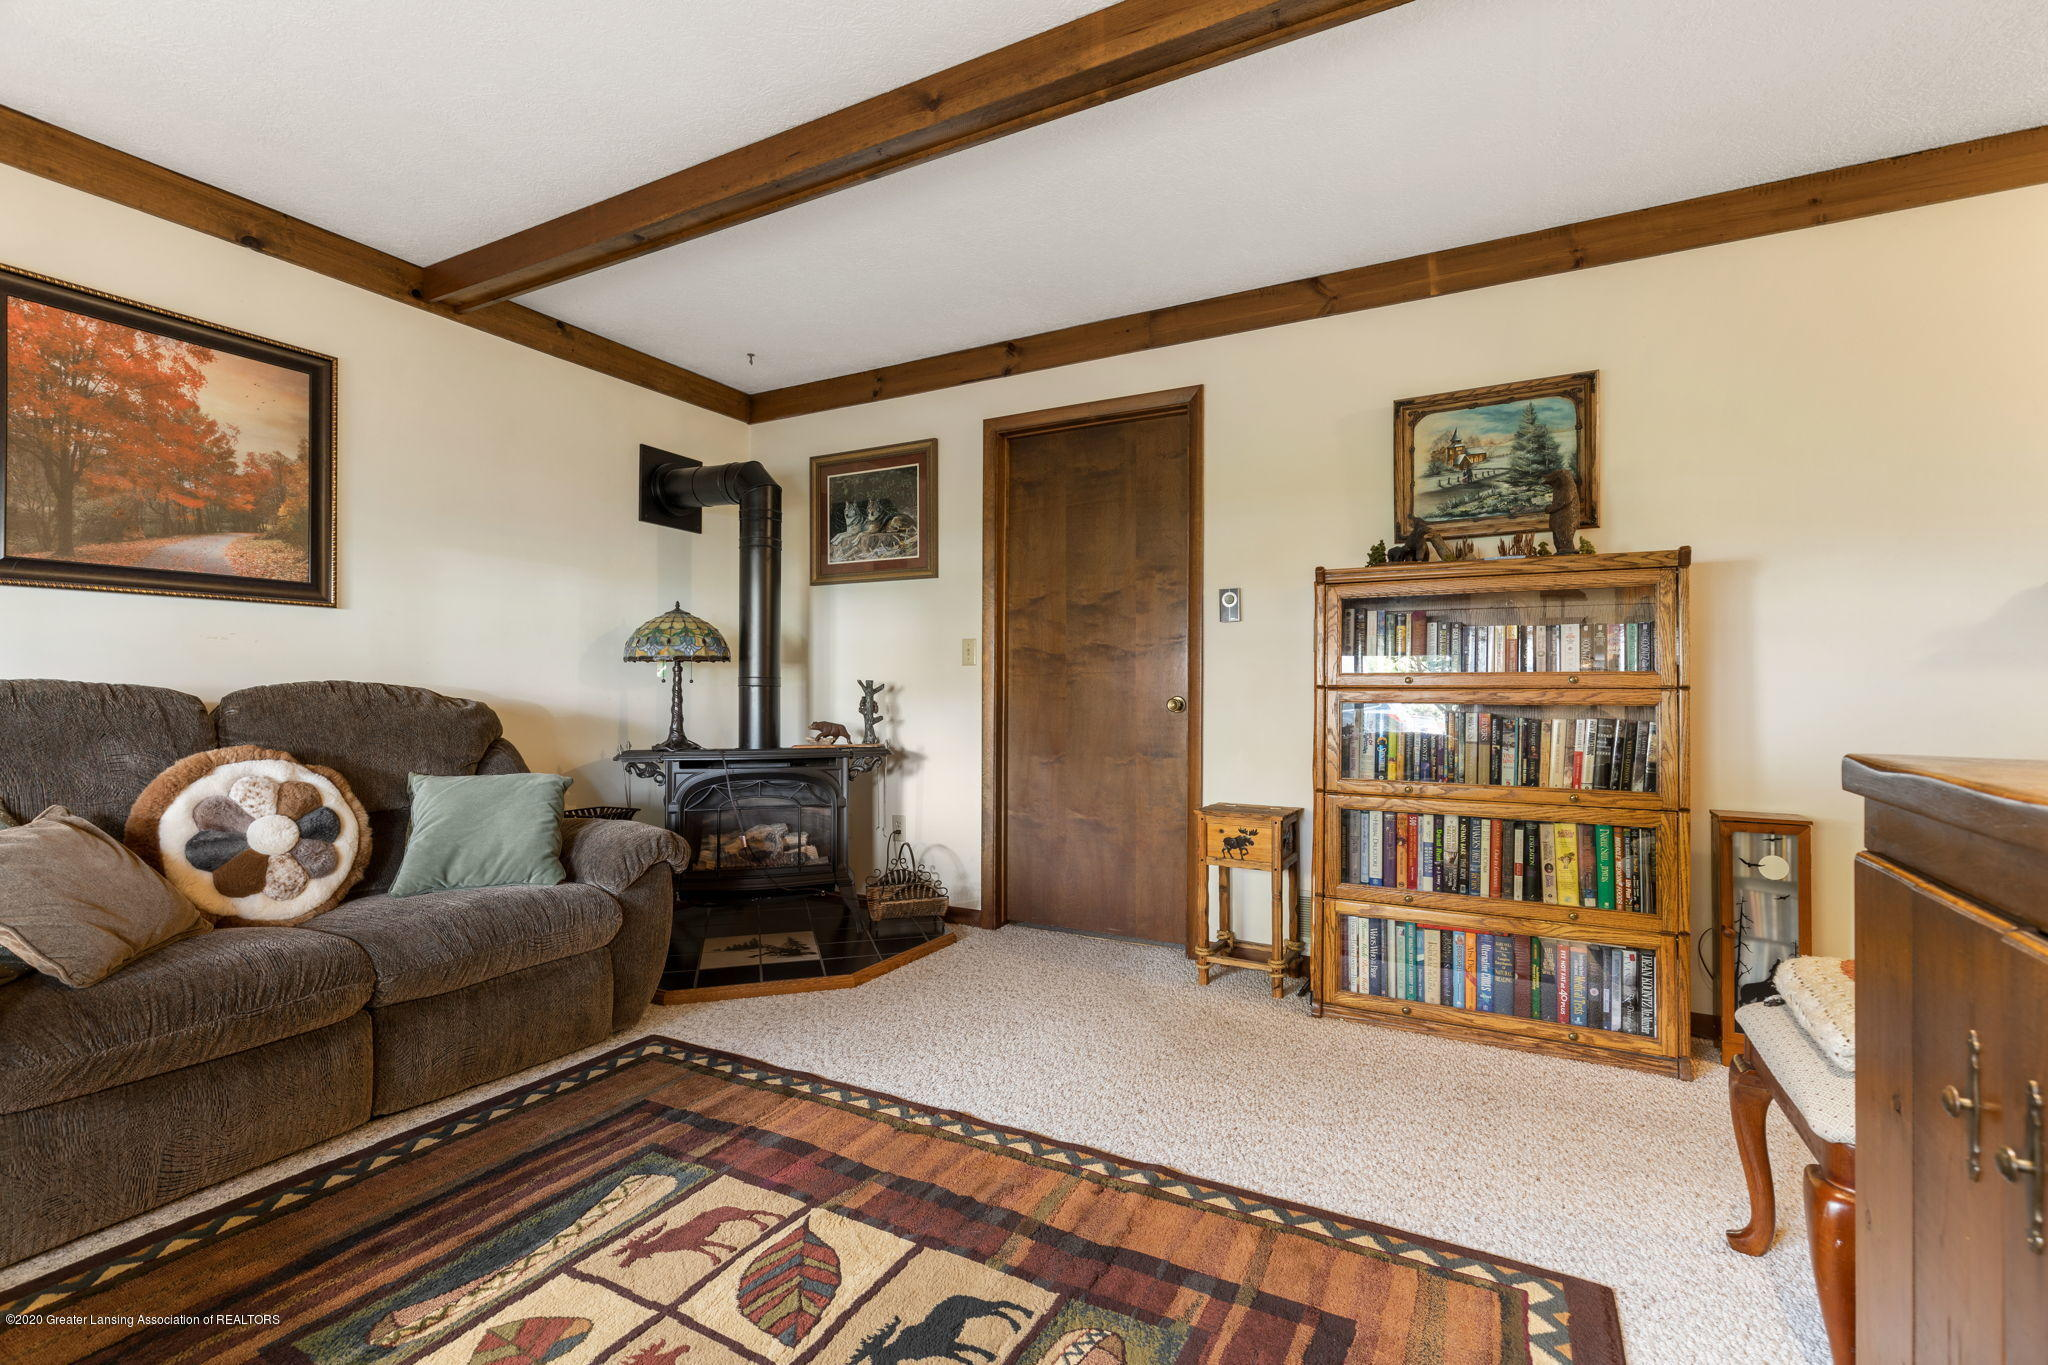 617 Green St - 18-web-or-mls-1P6A9459 - 9